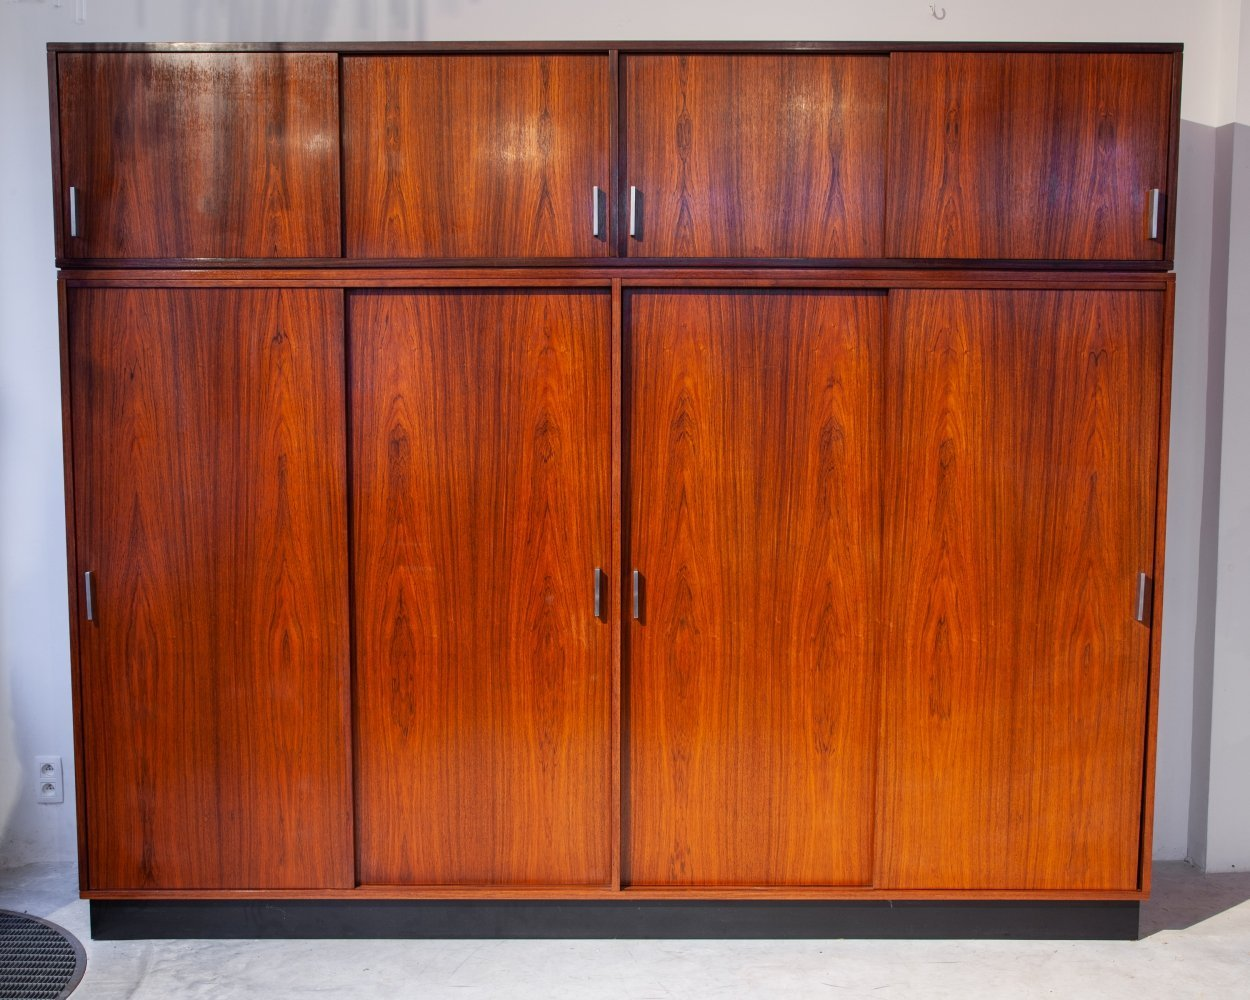 High Wardrobe / Cabinet by Hendrickx for Belform, 1960s